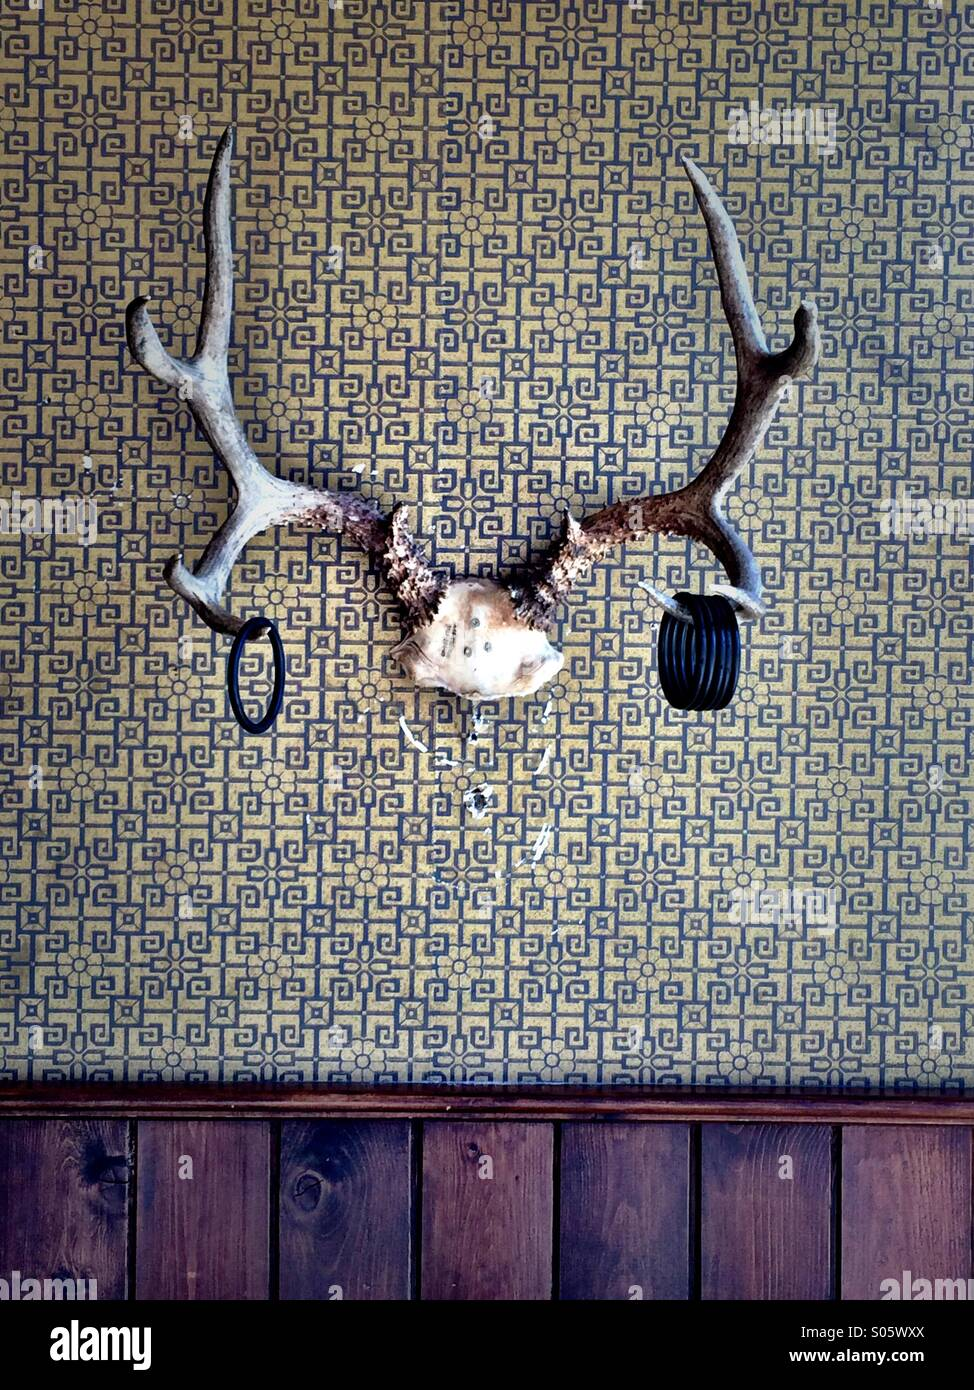 Deer antlers used for ring toss game in turn of the century arcade. - Stock Image